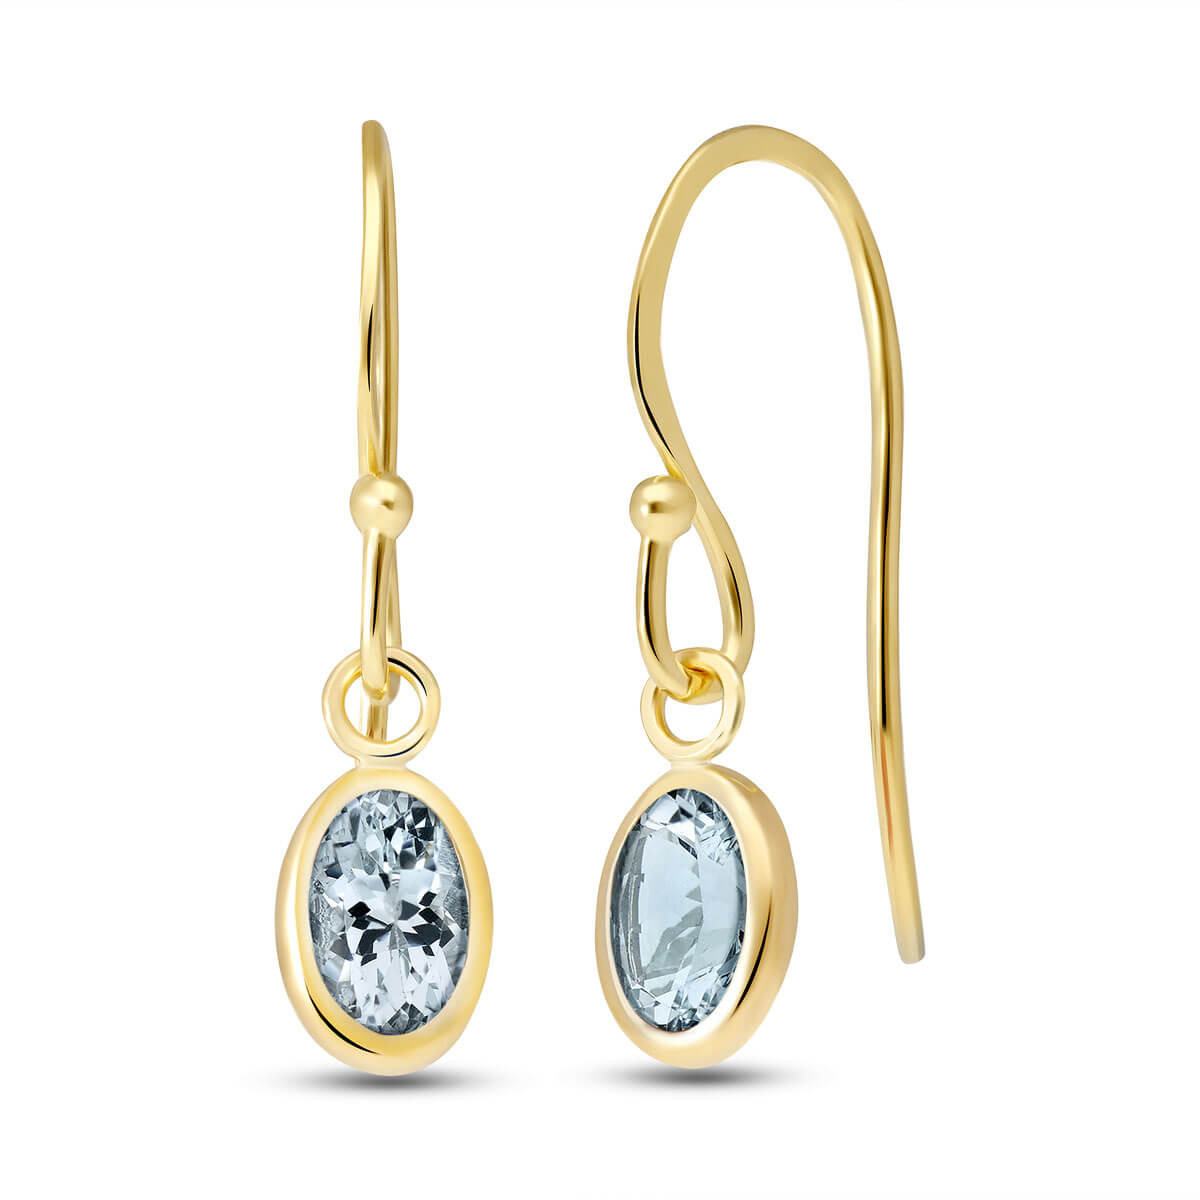 Aquamarine Allure Drop Earrings 1 ctw in 9ct Gold